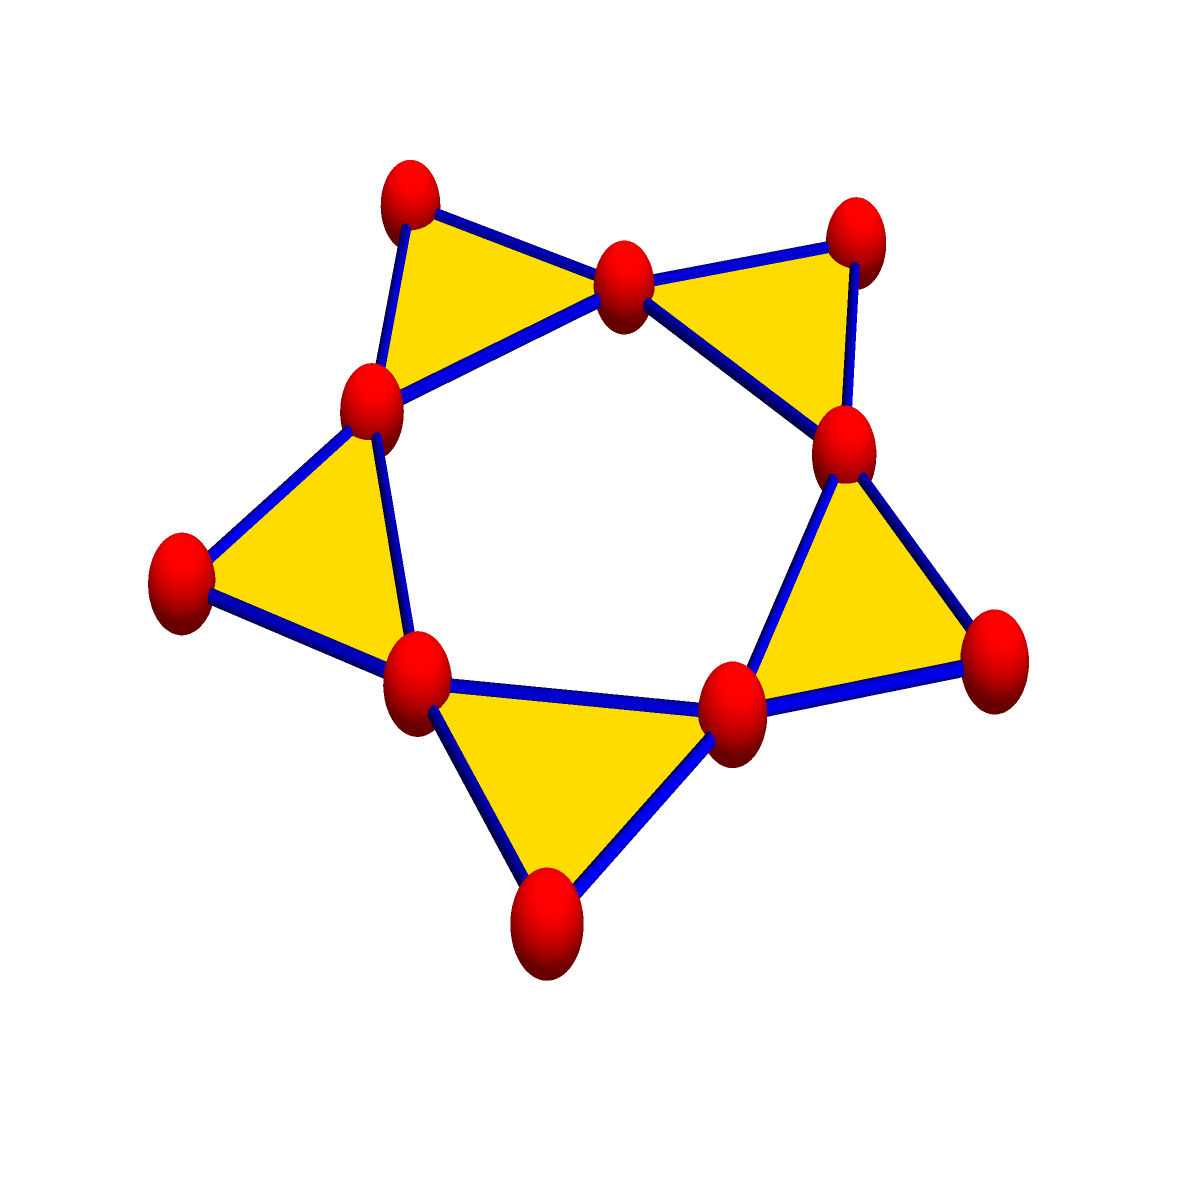 The connection graph to the cyclic graph with 5 vertices